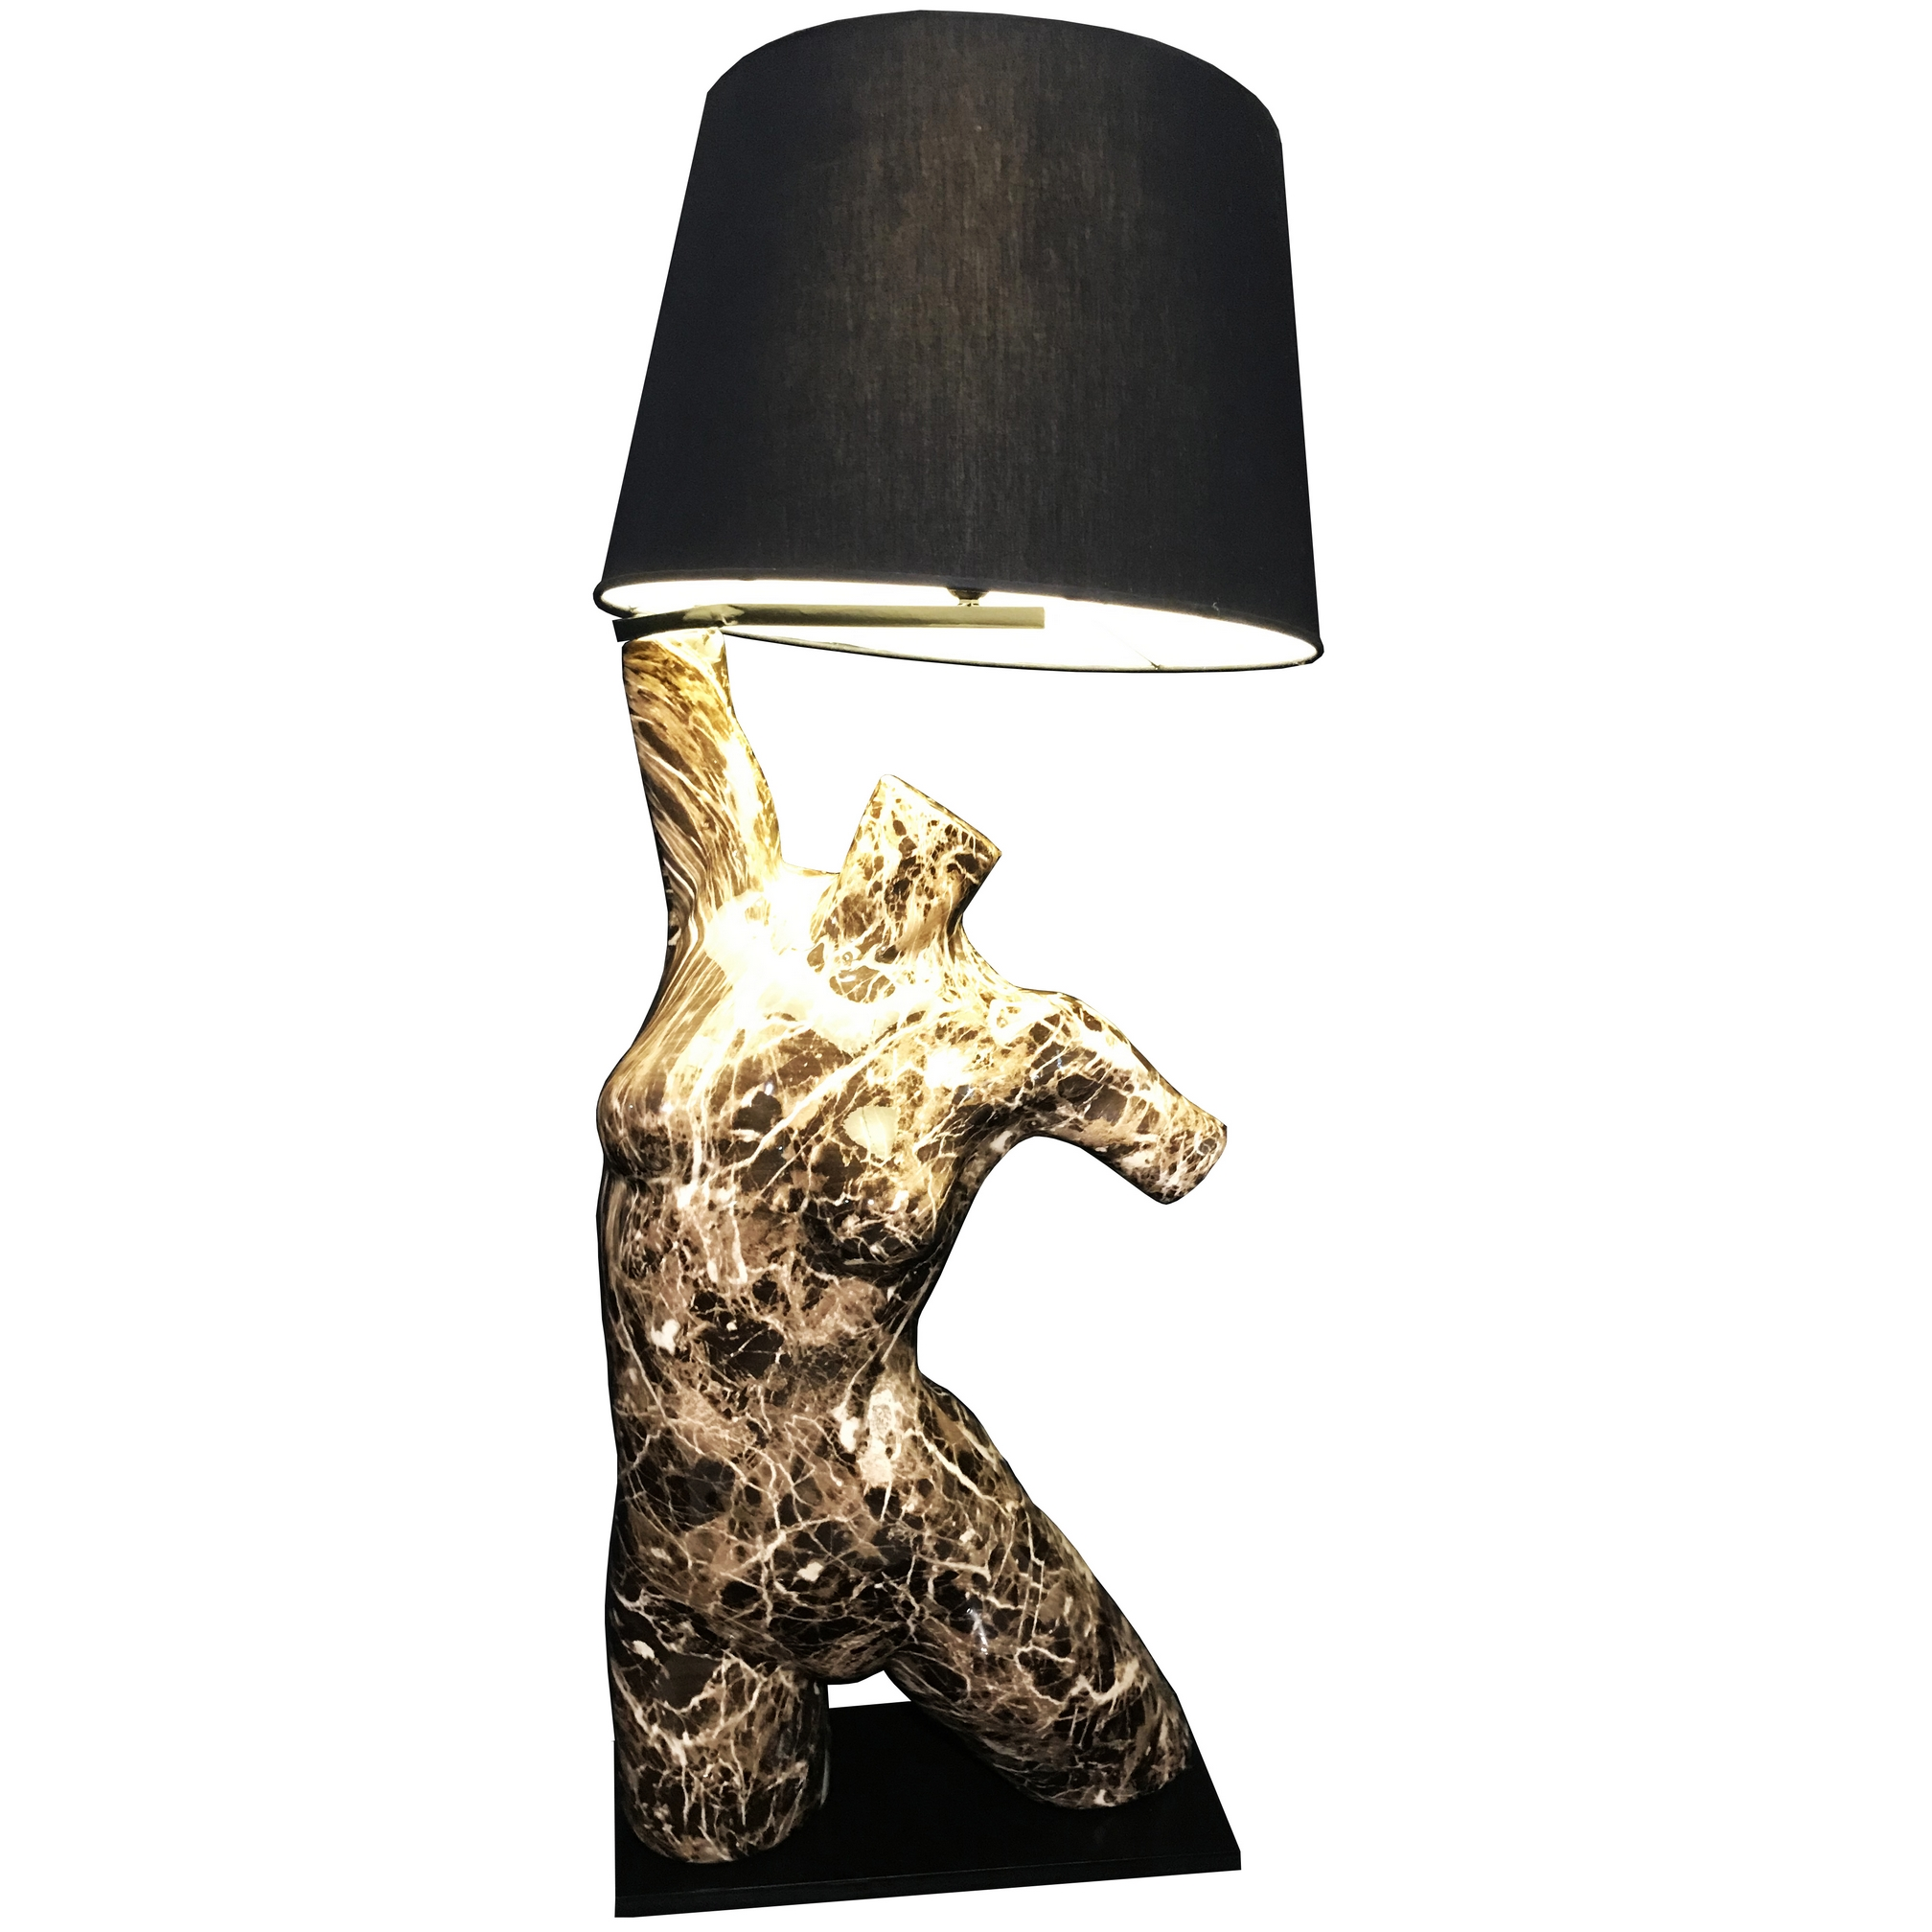 Mannequin Table Lamp_Marble Style